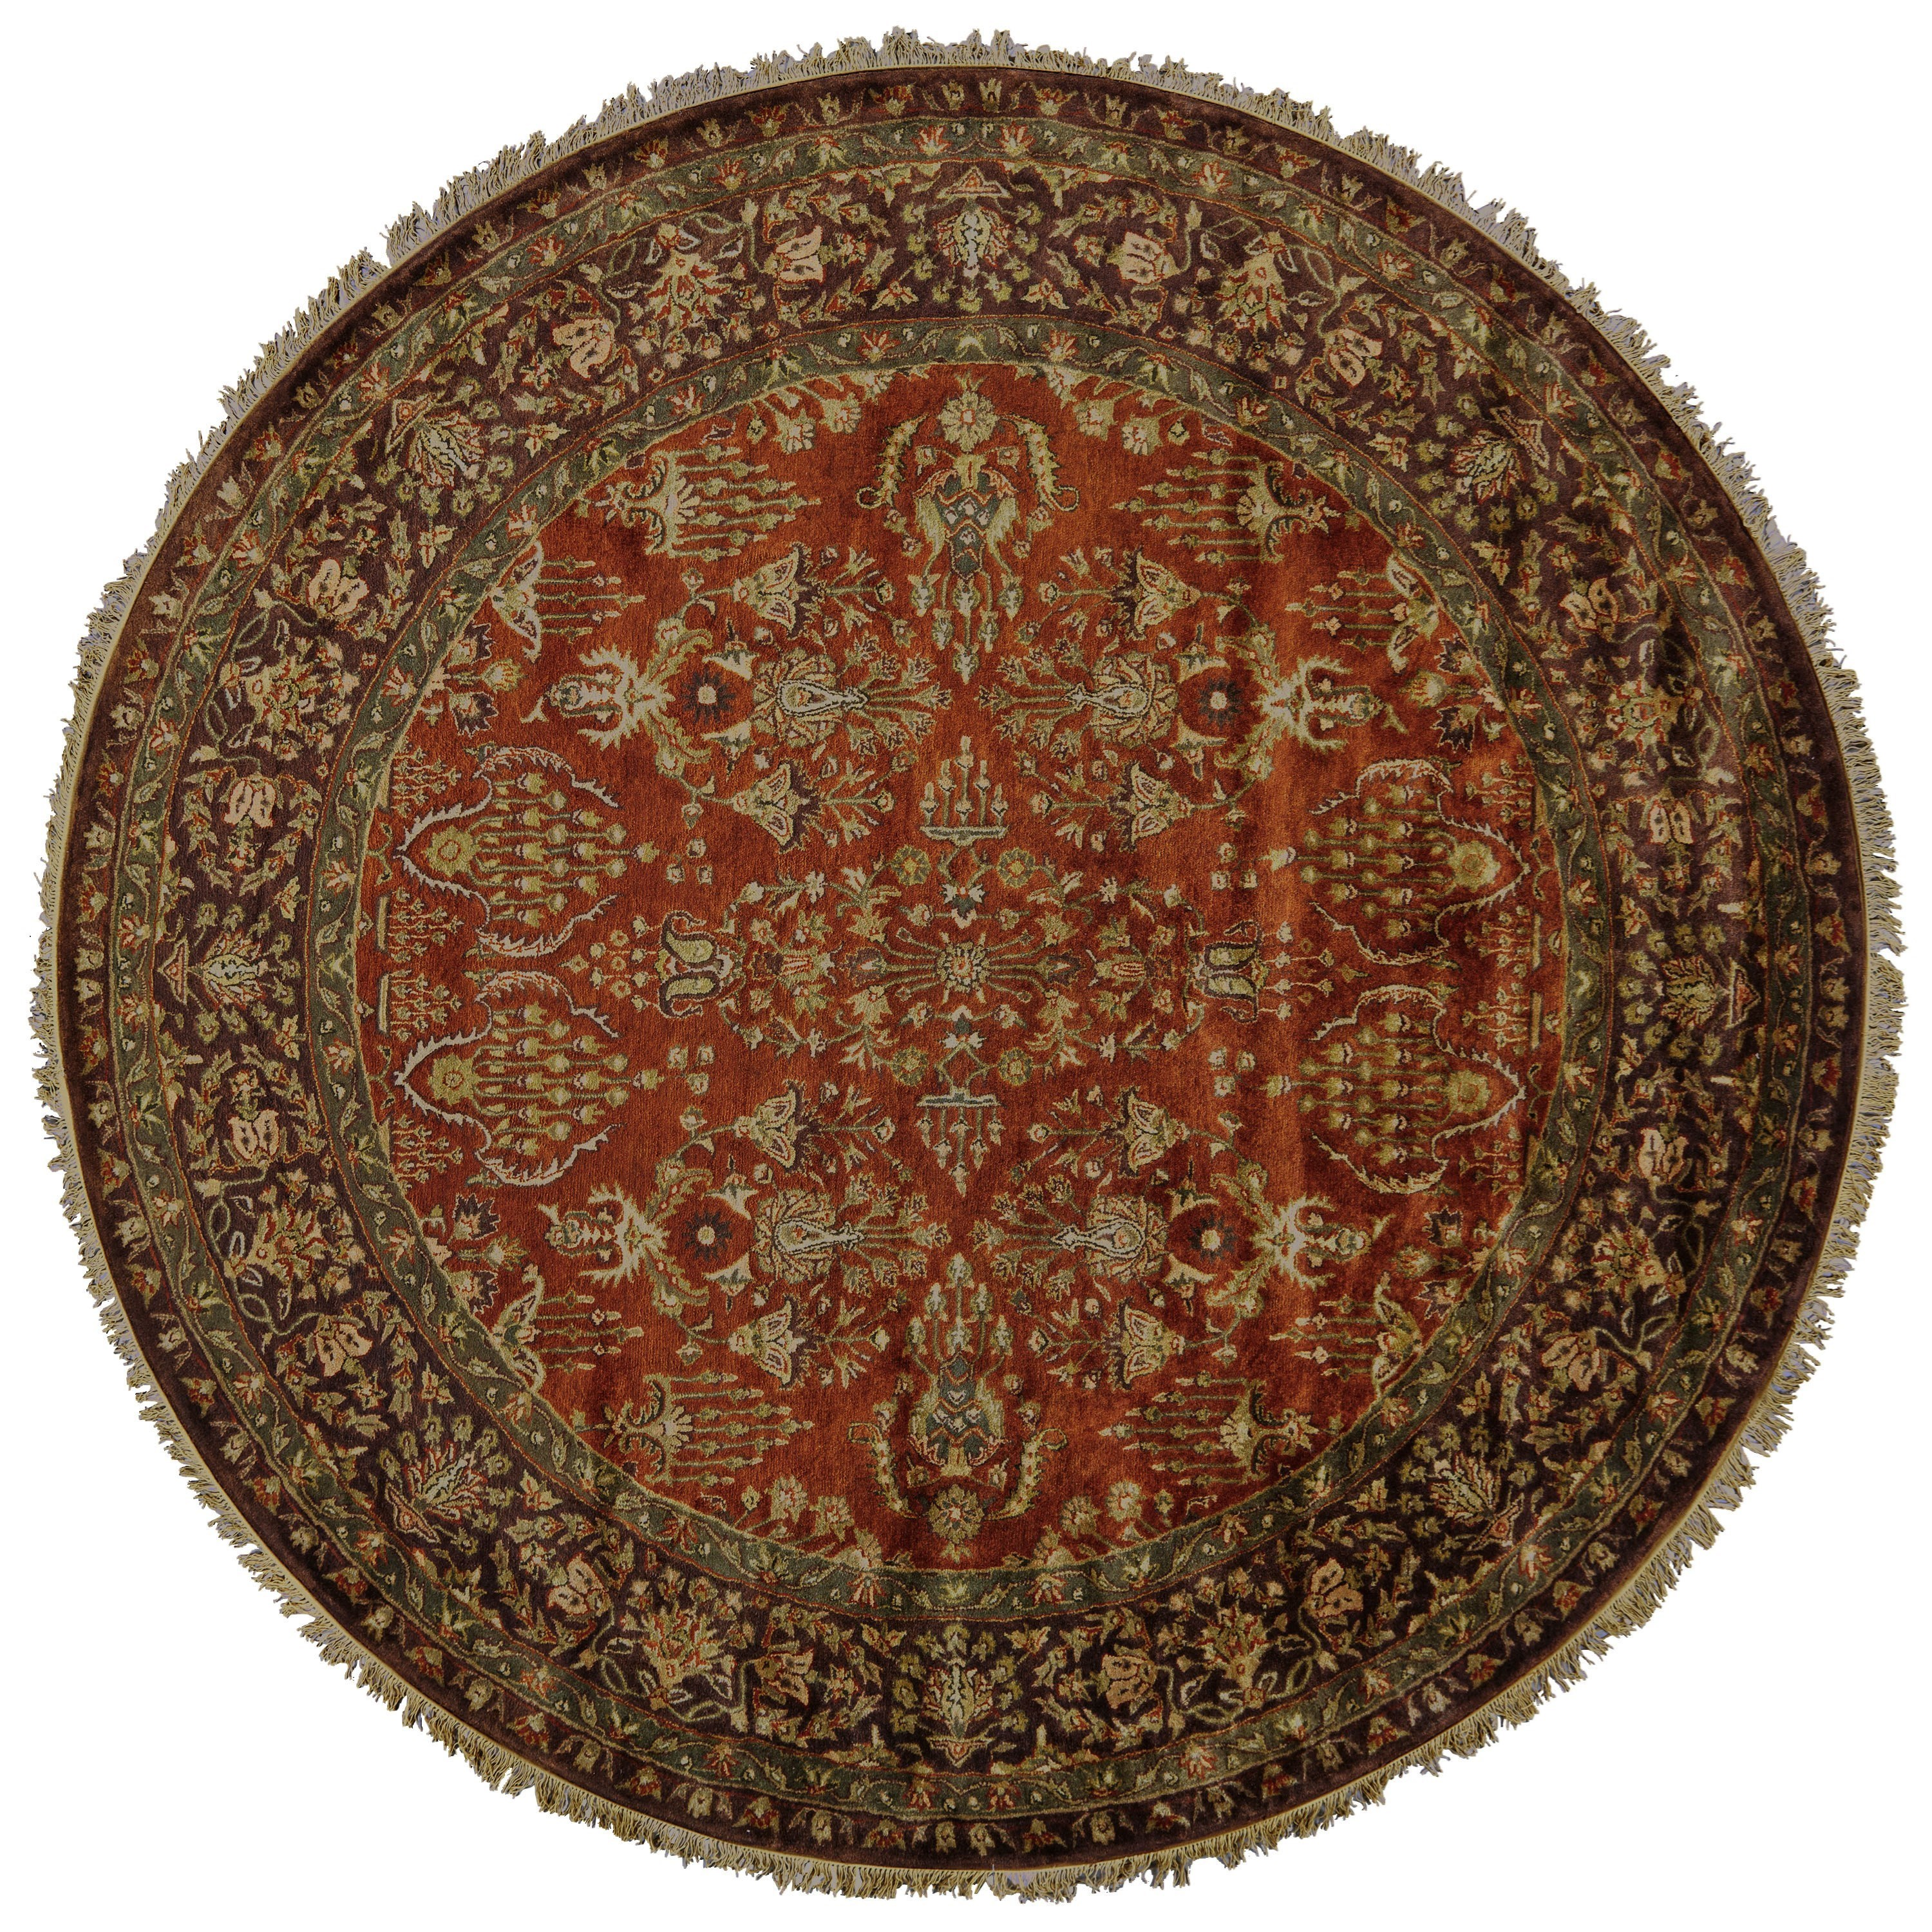 Amore Cinnamon/Plum 8' x 8' Round Area Rug by Feizy Rugs at Sprintz Furniture